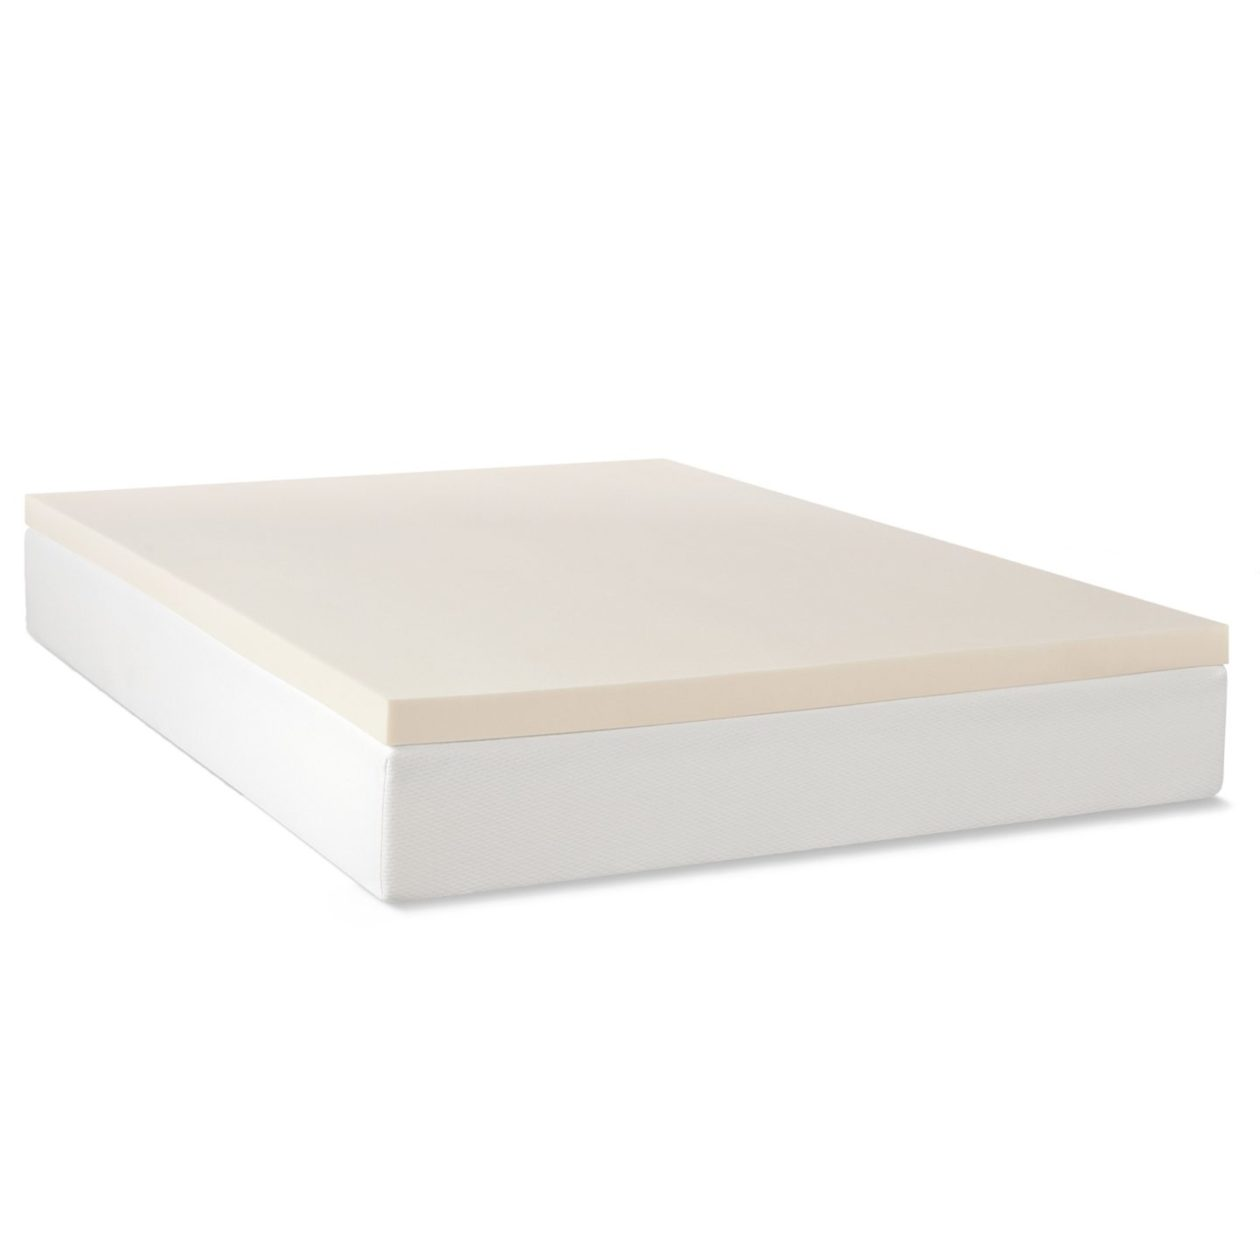 foam mattress topper for sofa bed minotti sofas 2017 how to make a pull out more comfortable overstock com add